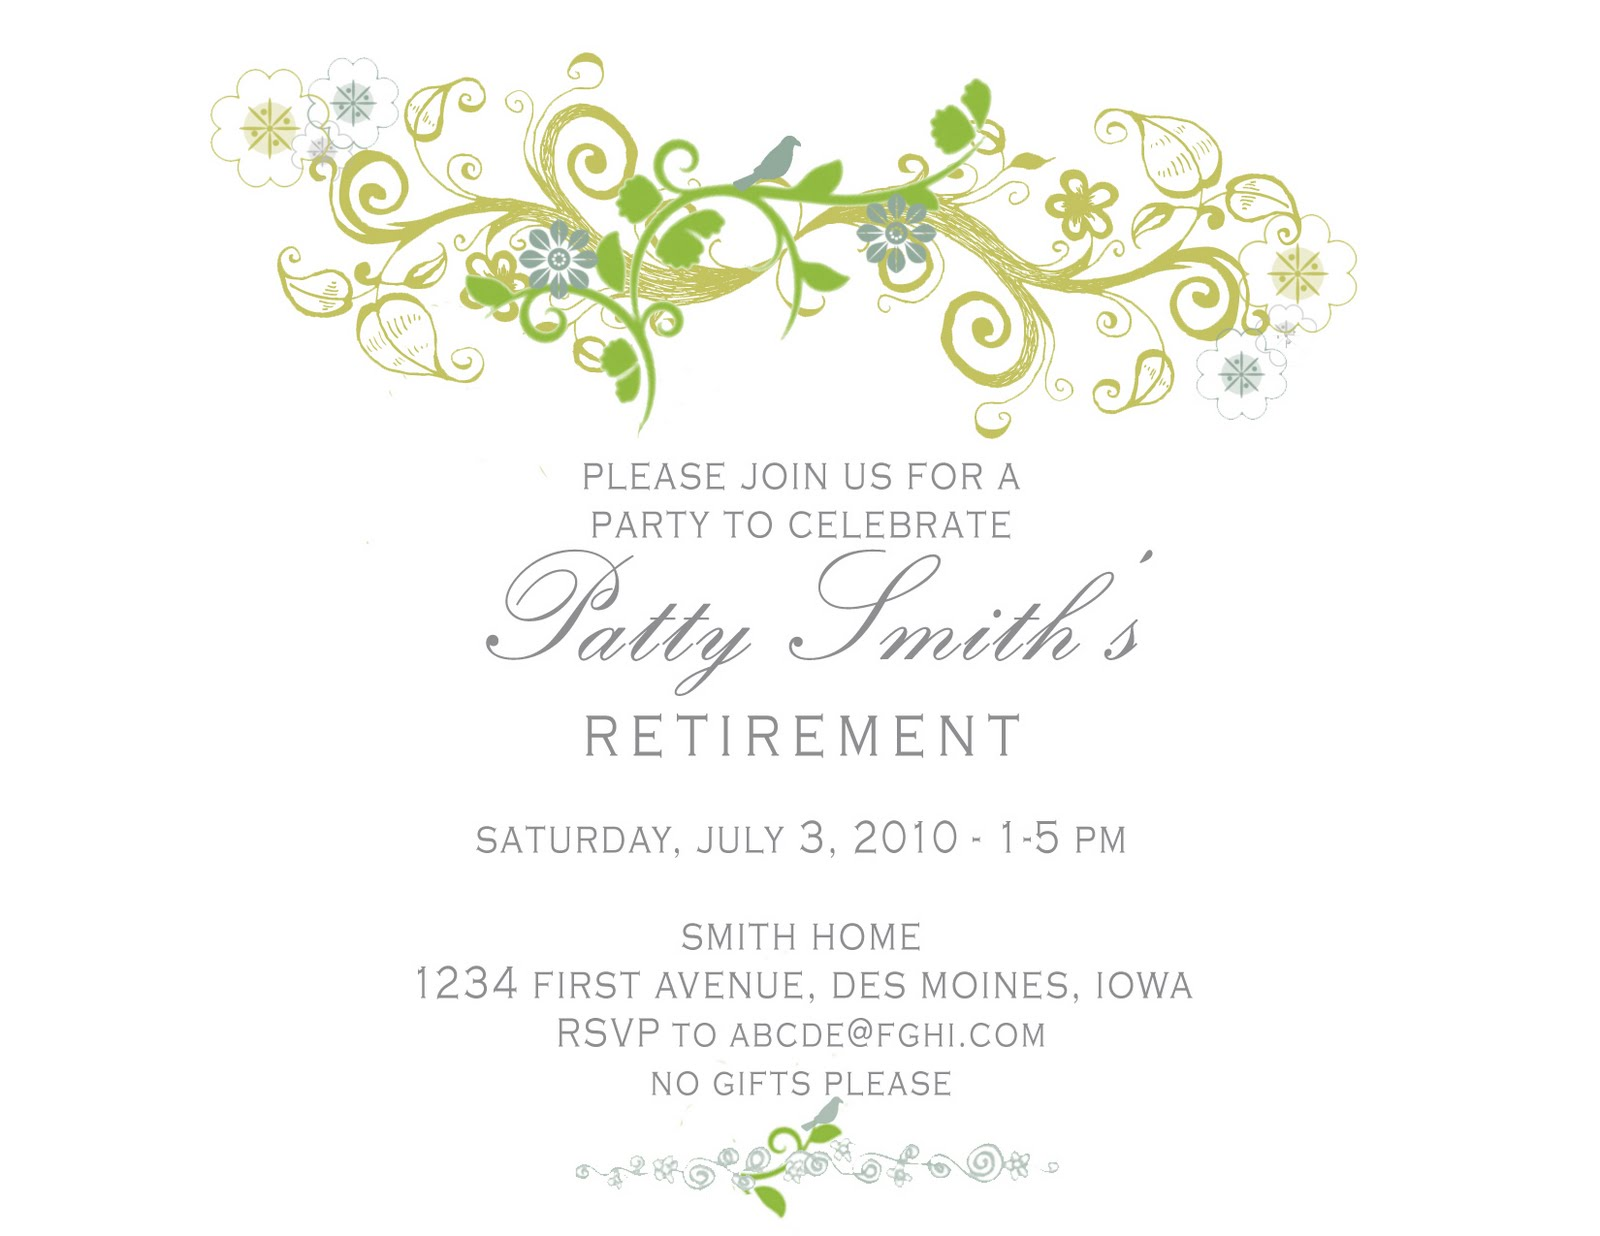 iDesign a Retirement Party Invitation – Printable Retirement Party Invitations